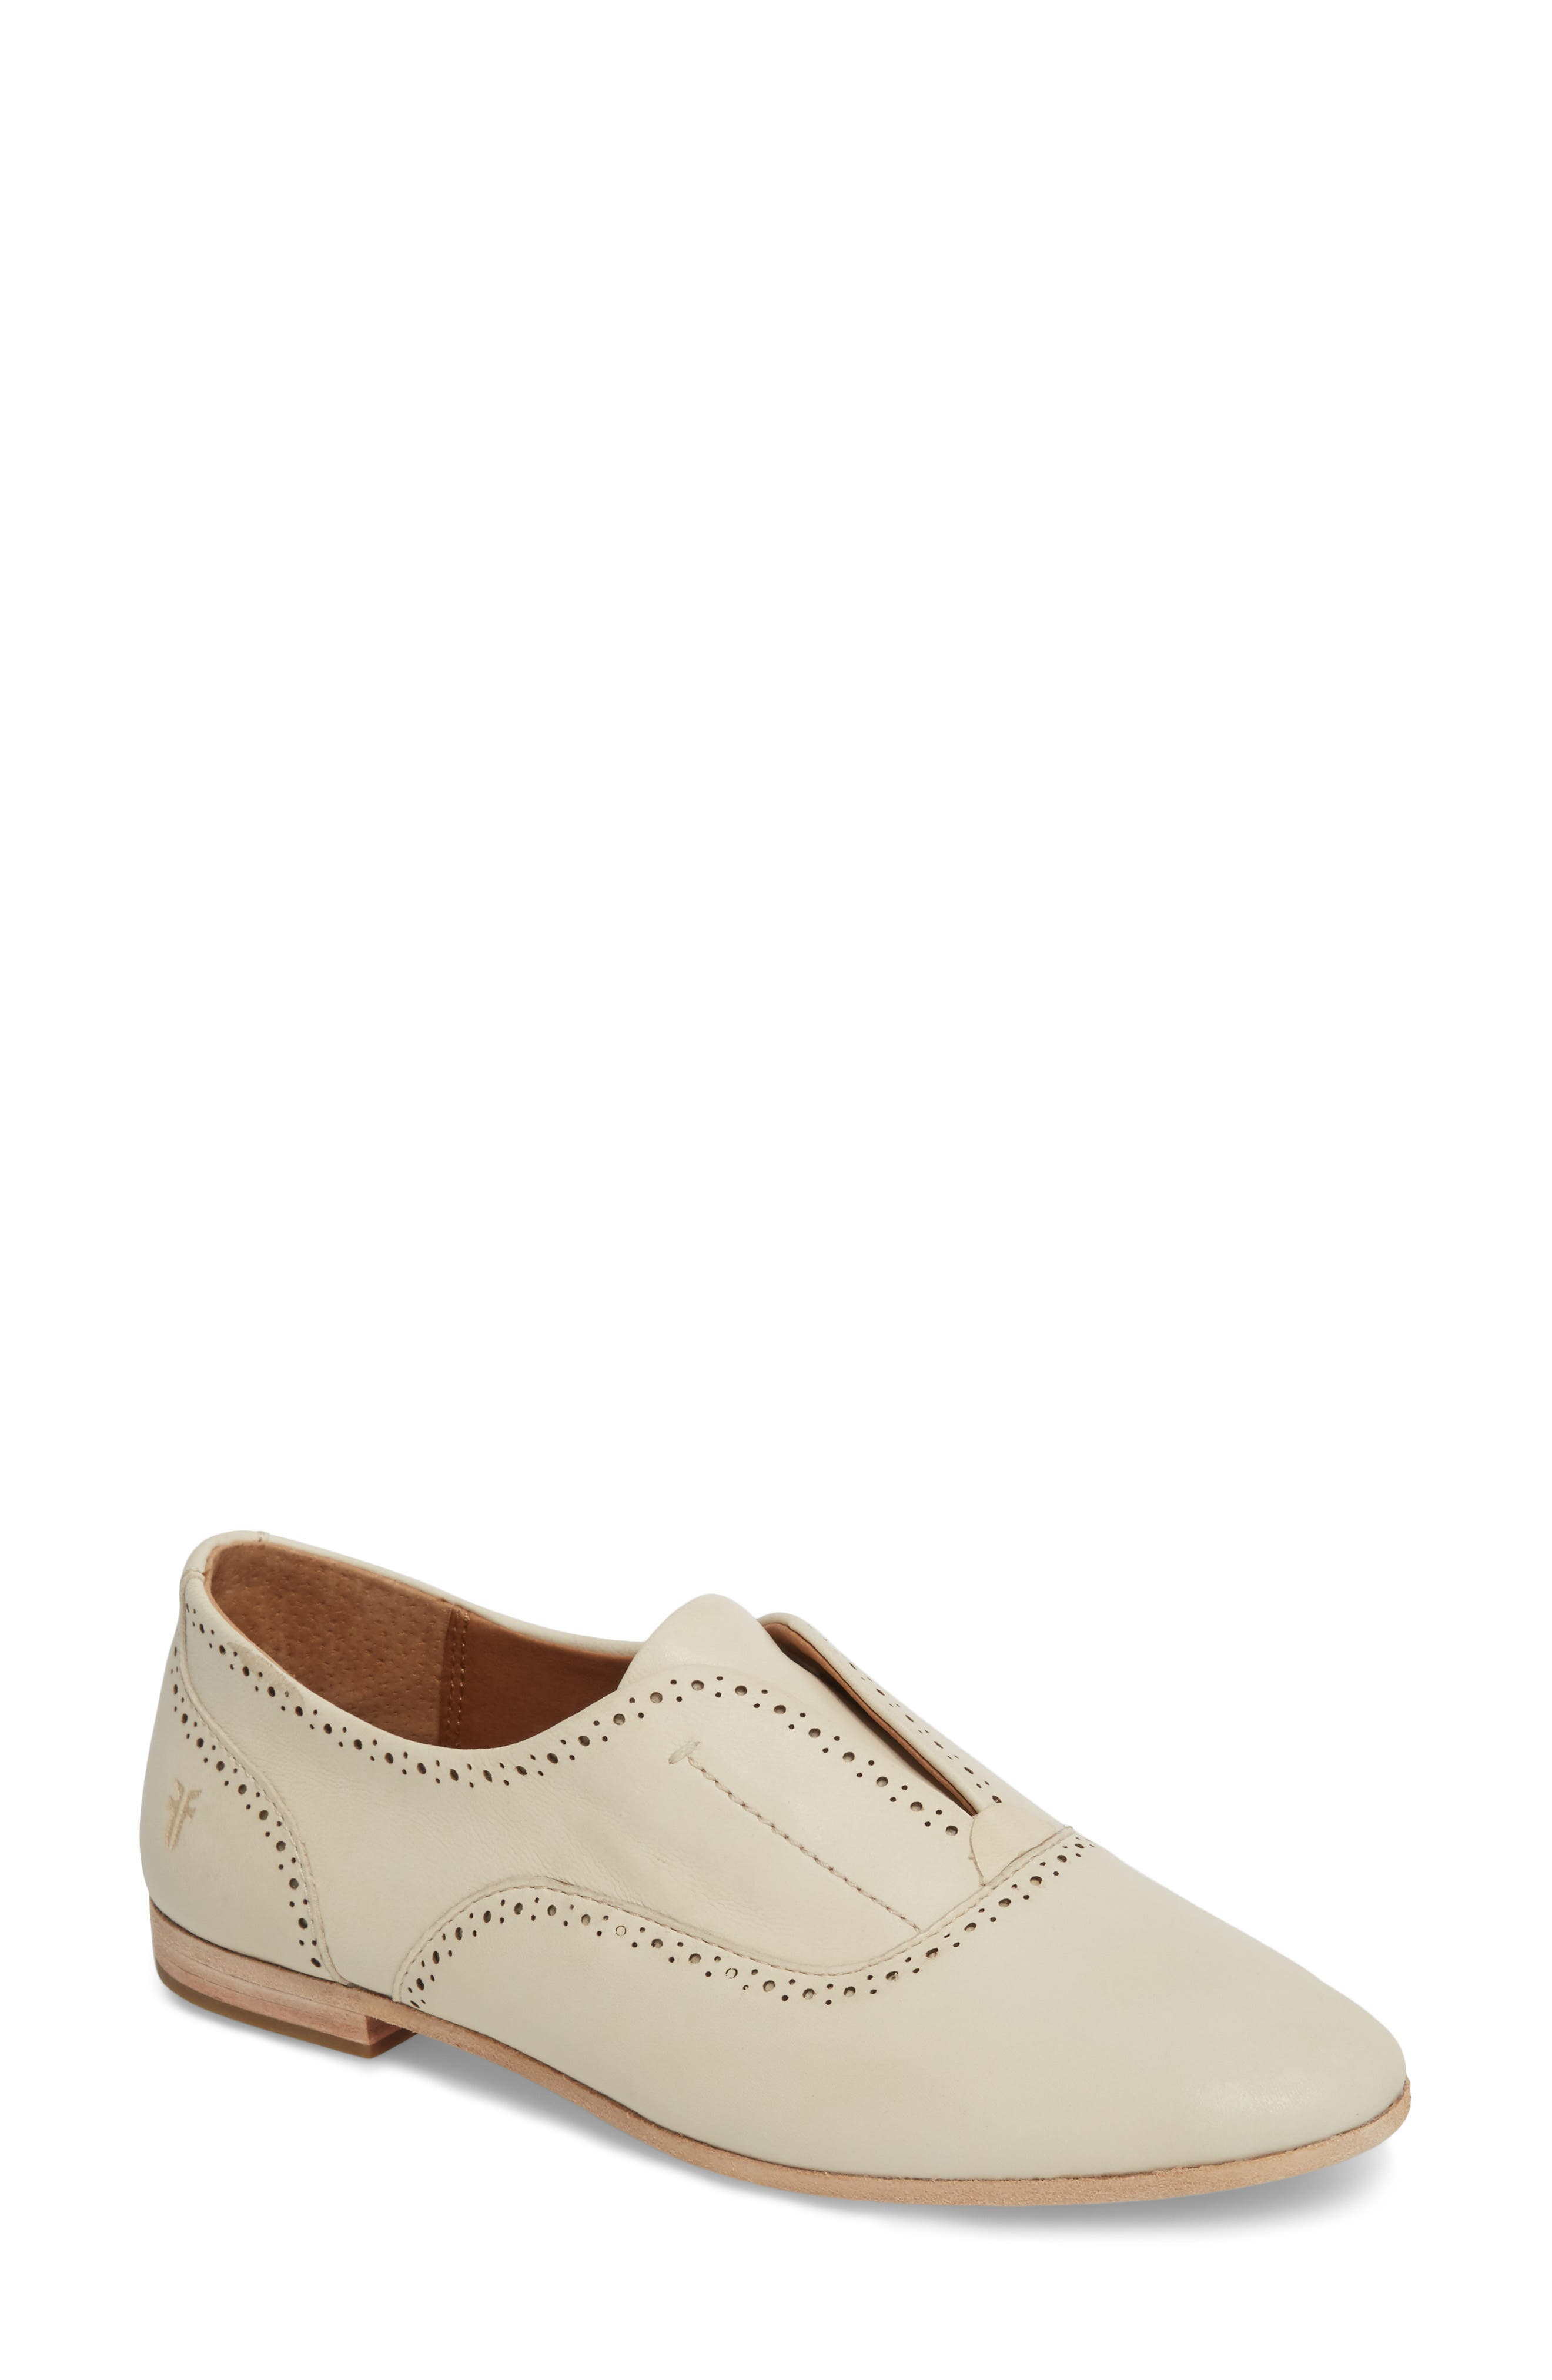 Terri Perforated Oxford in White Leather